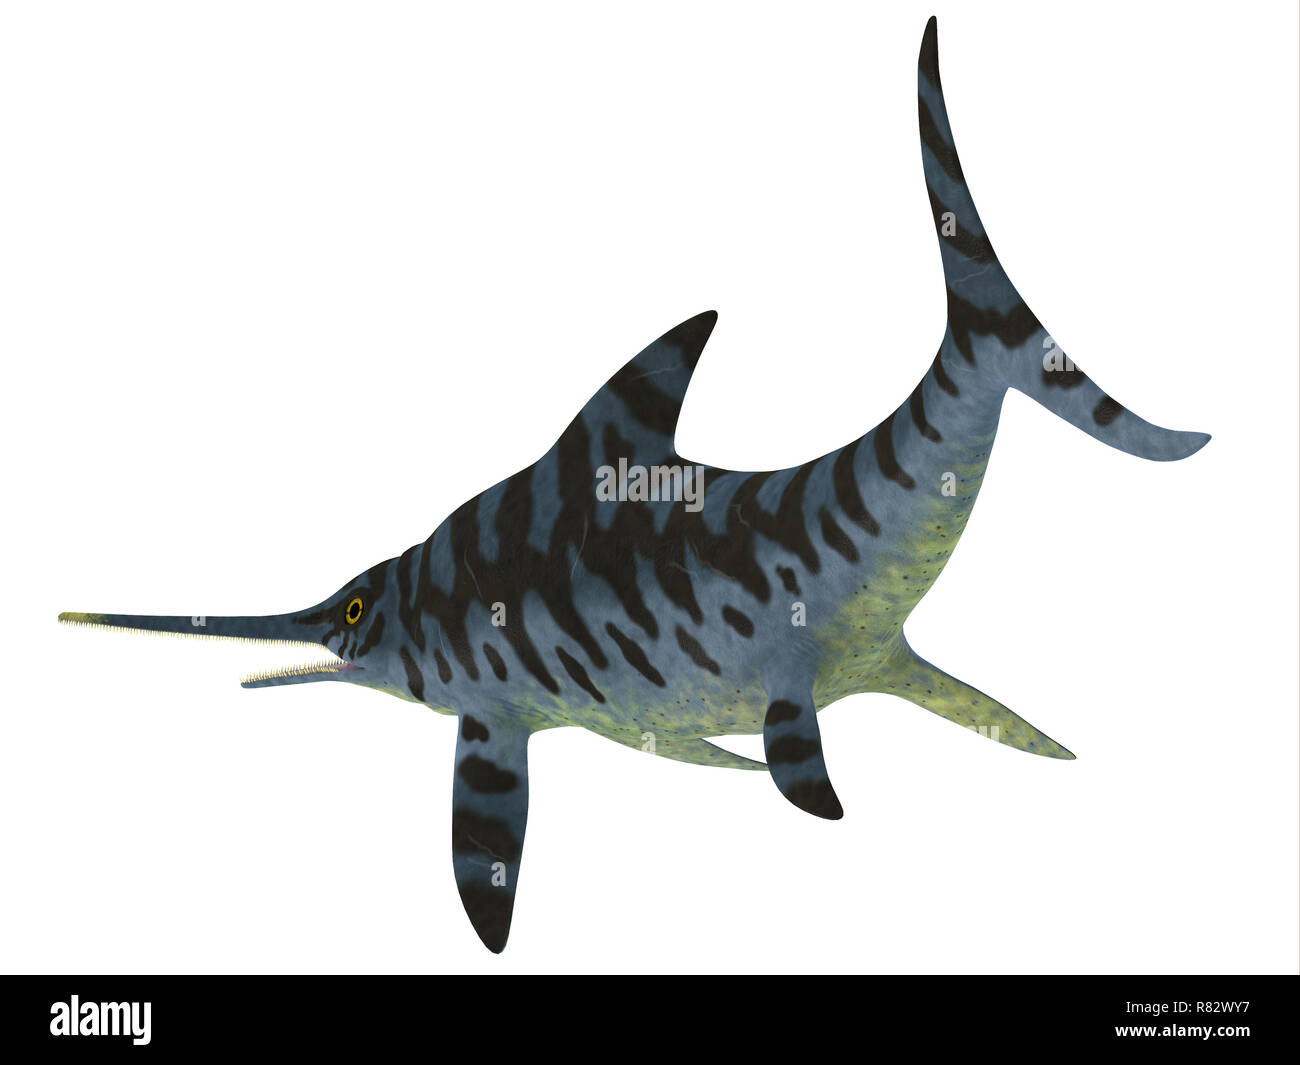 Eurhinosaurus Reptile Tail - Eurhinosaurus was a carnivorous Ichthyosaur reptile that lived in Europe during the Jurassic Period. - Stock Image